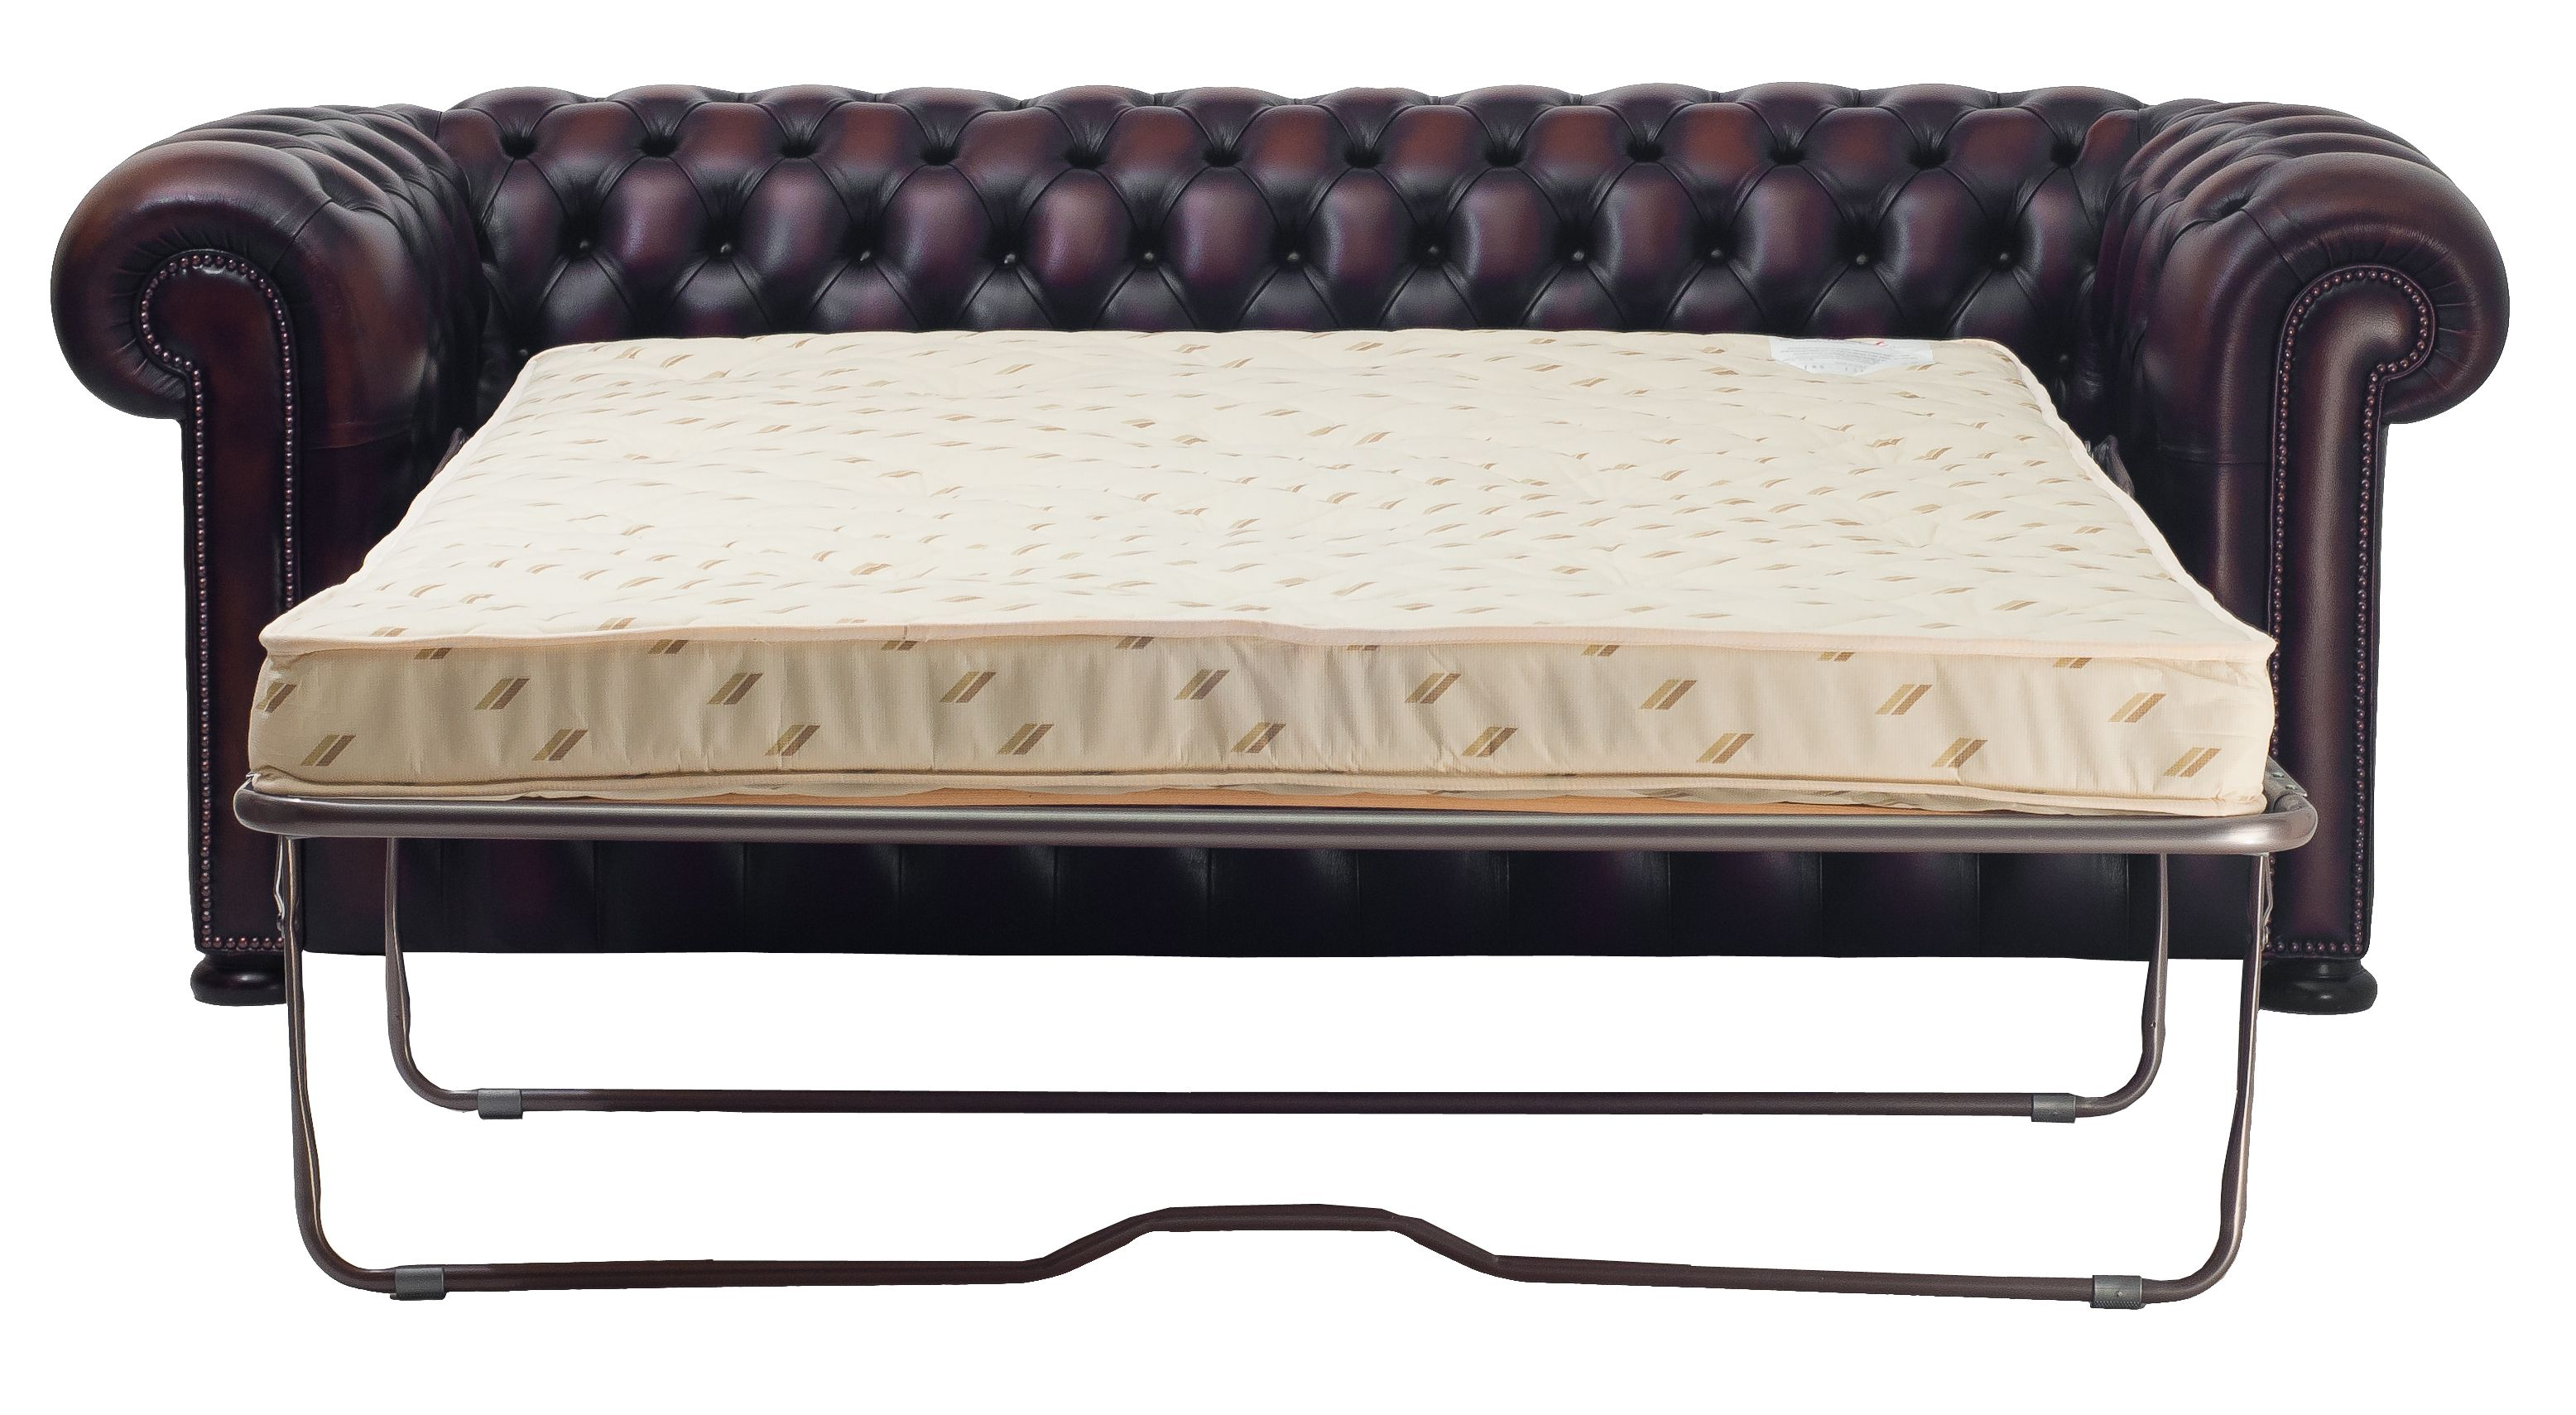 Chesterfield Schlafsofa Chesterfield Sofa Bed Quality Sofa Bed Chesterfield Range